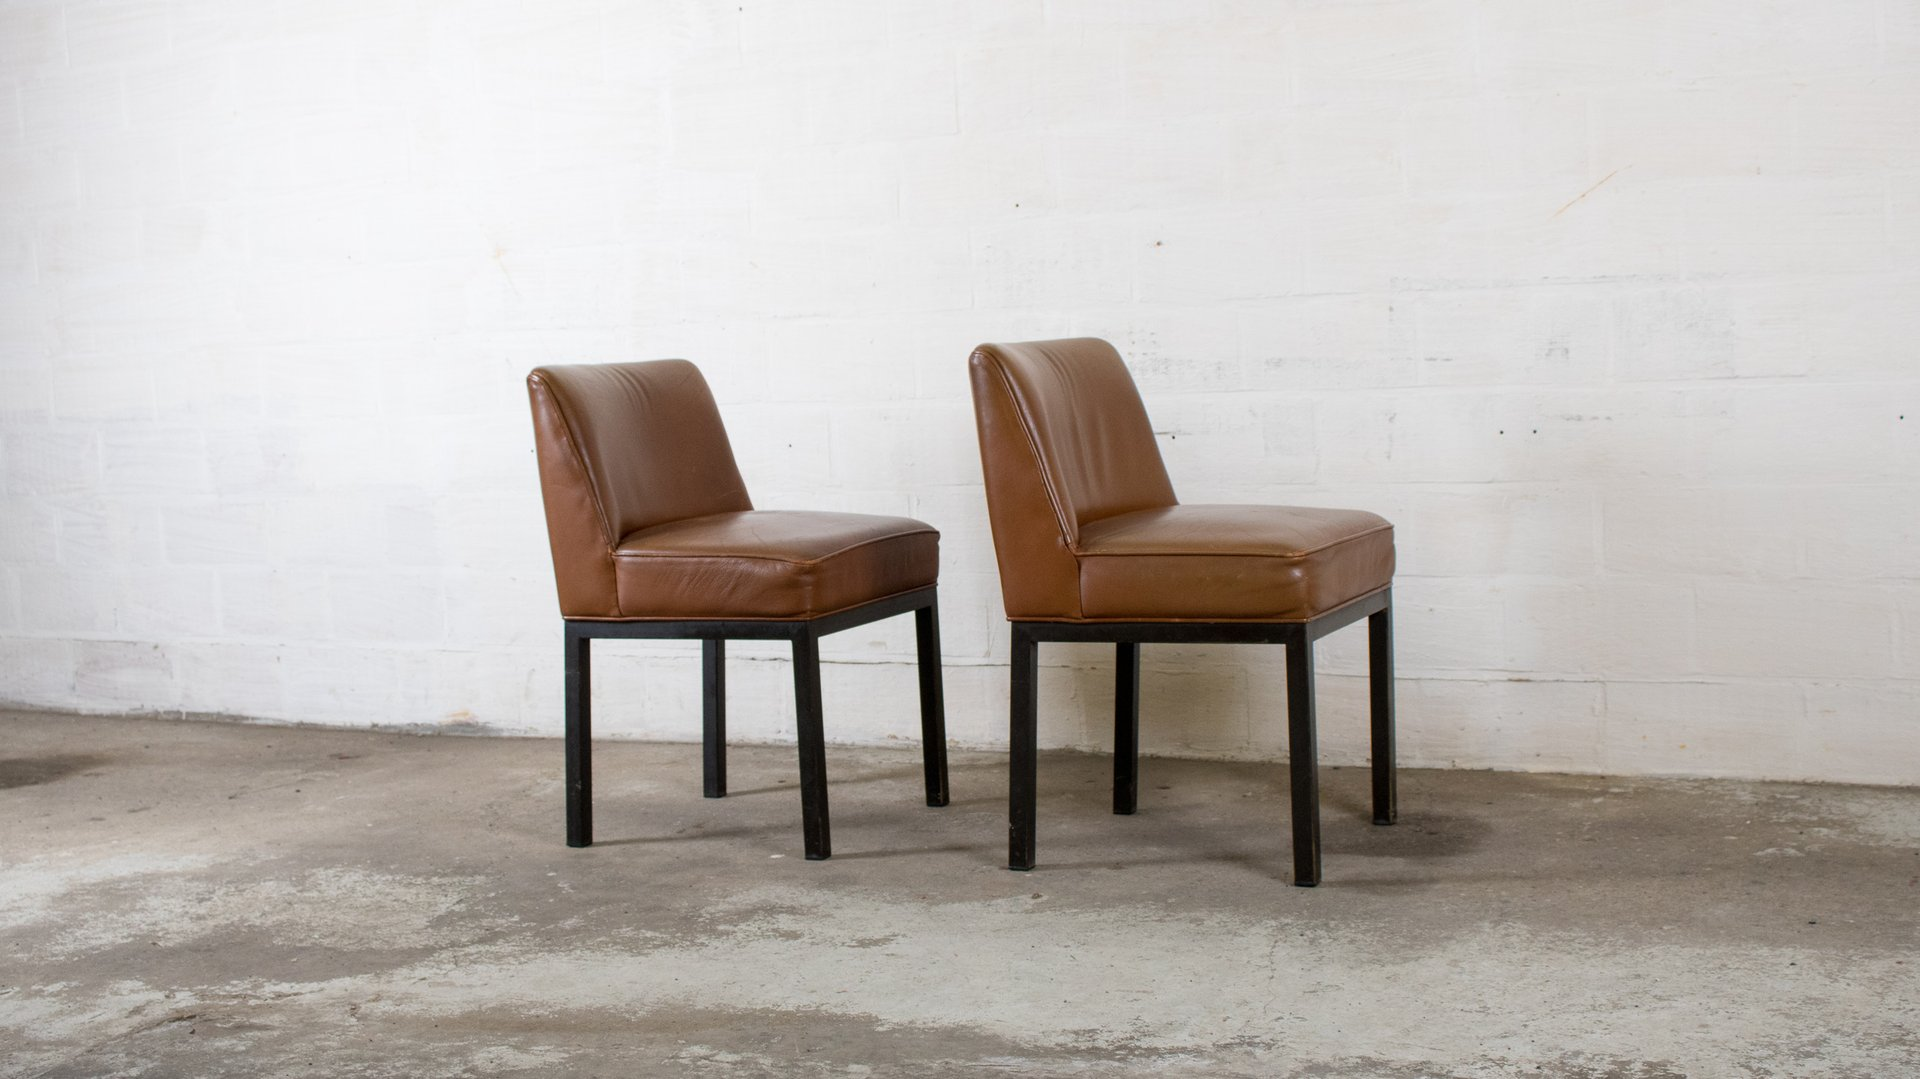 louise chairs by jules wabbes for mobilier universel 1960s set of 2 for sale at pamono. Black Bedroom Furniture Sets. Home Design Ideas